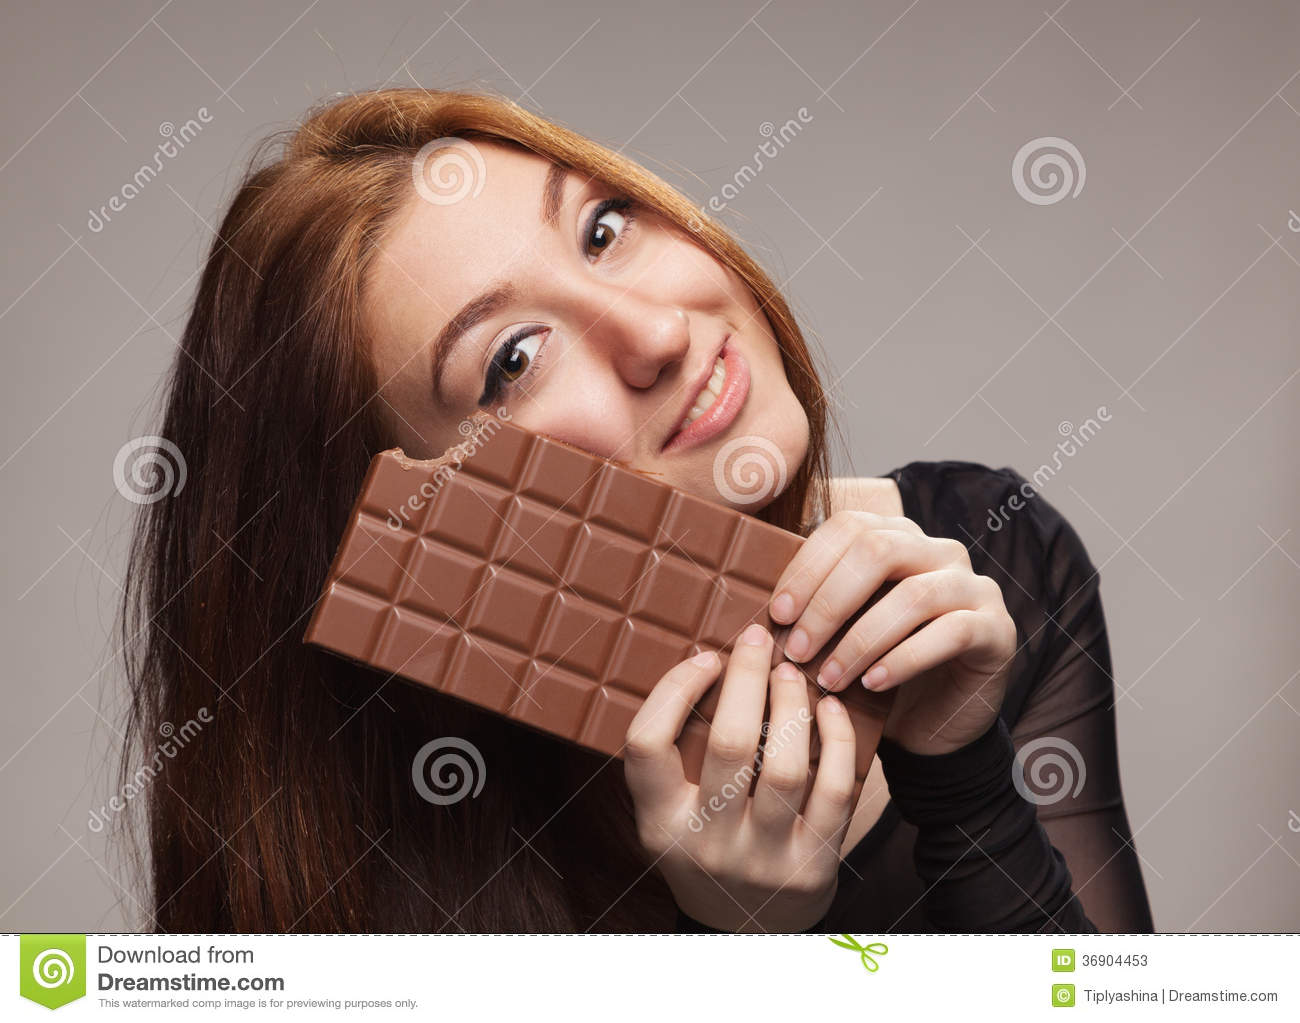 Happy Girl Big Chocolate Bar Stock Photos, Images, & Pictures - 81 ...